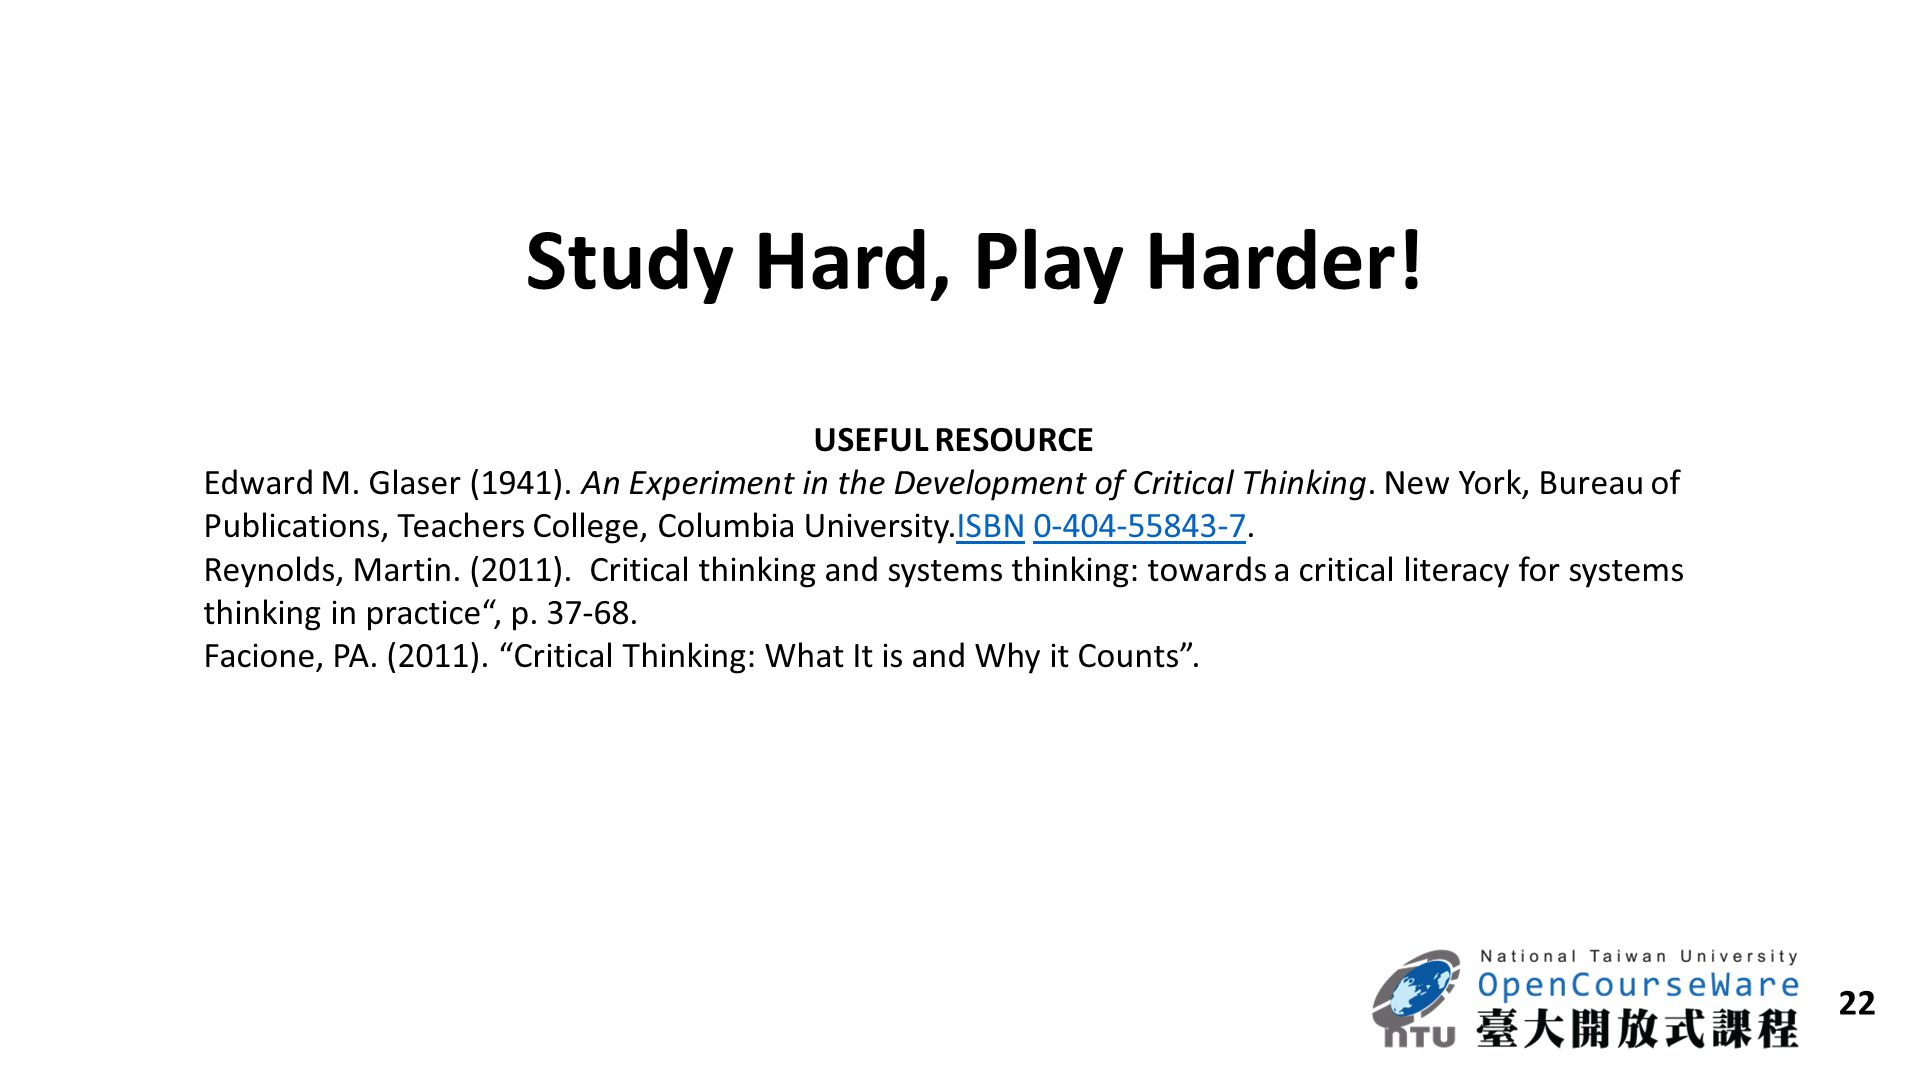 Study Hard, Play Harder! USEFUL RESOURCE